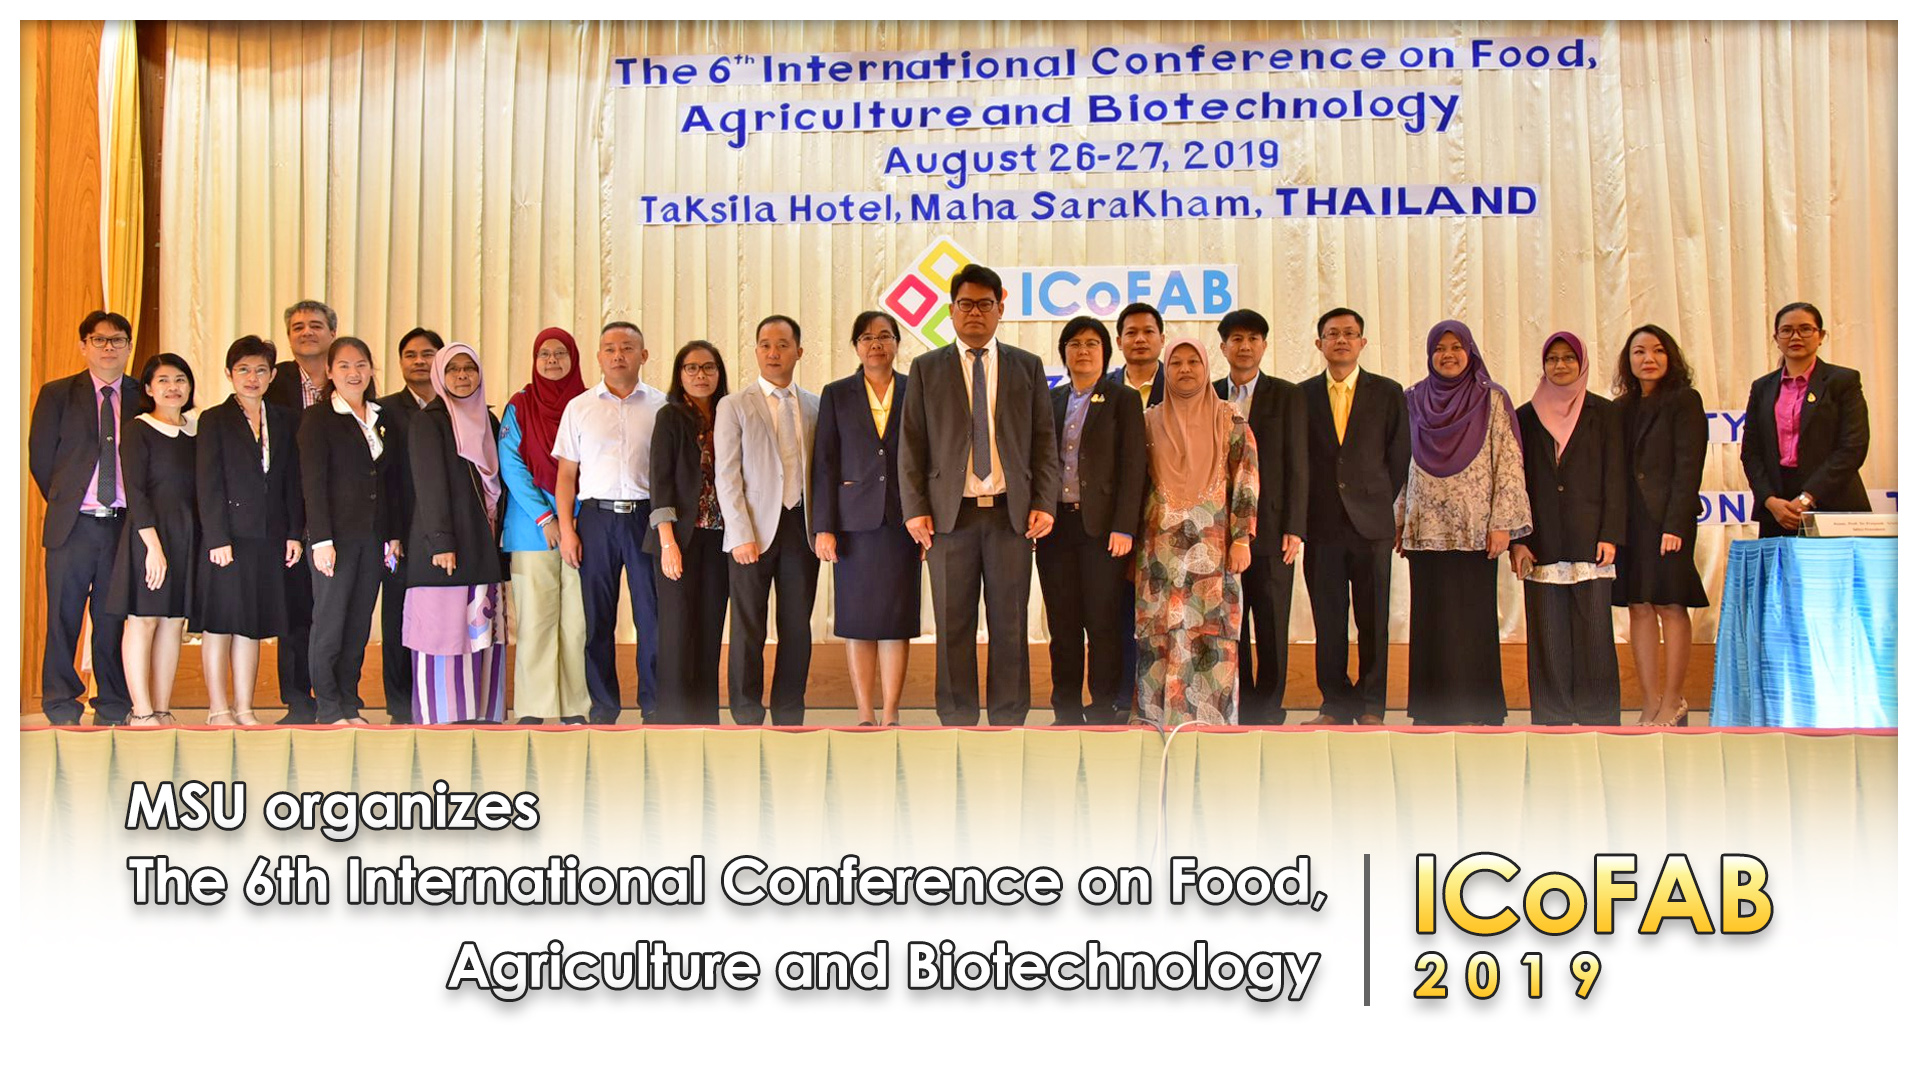 MSU organizes The 6th International Conference on Food, Agriculture and Biotechnology (ICoFAB 2019)